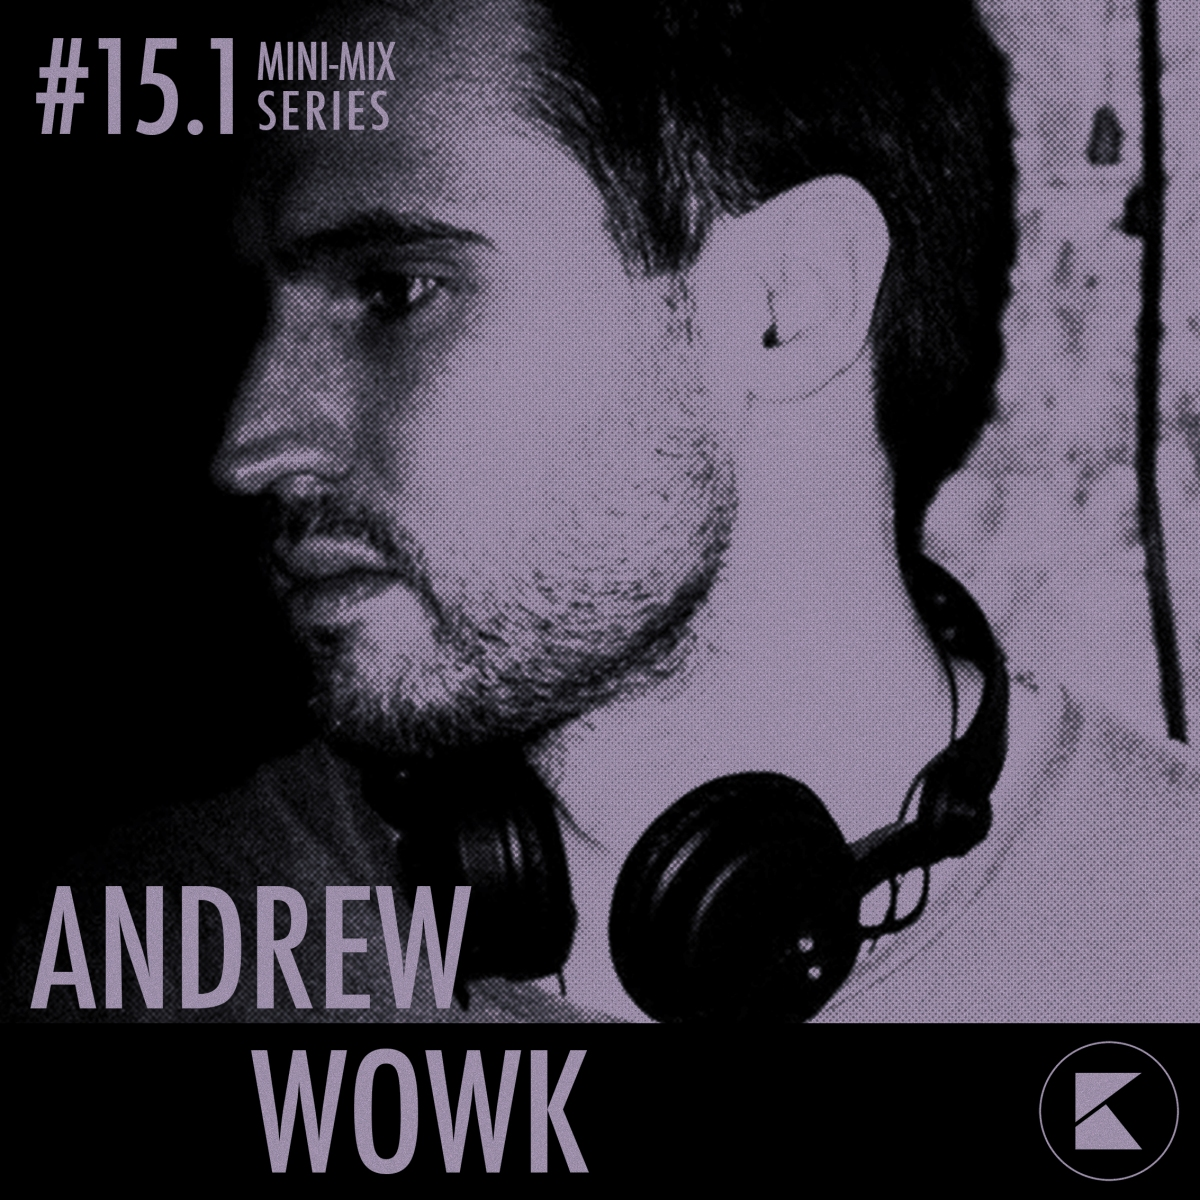 KONTRAST MINI-MIX #15.1 – ANDREW WOWK